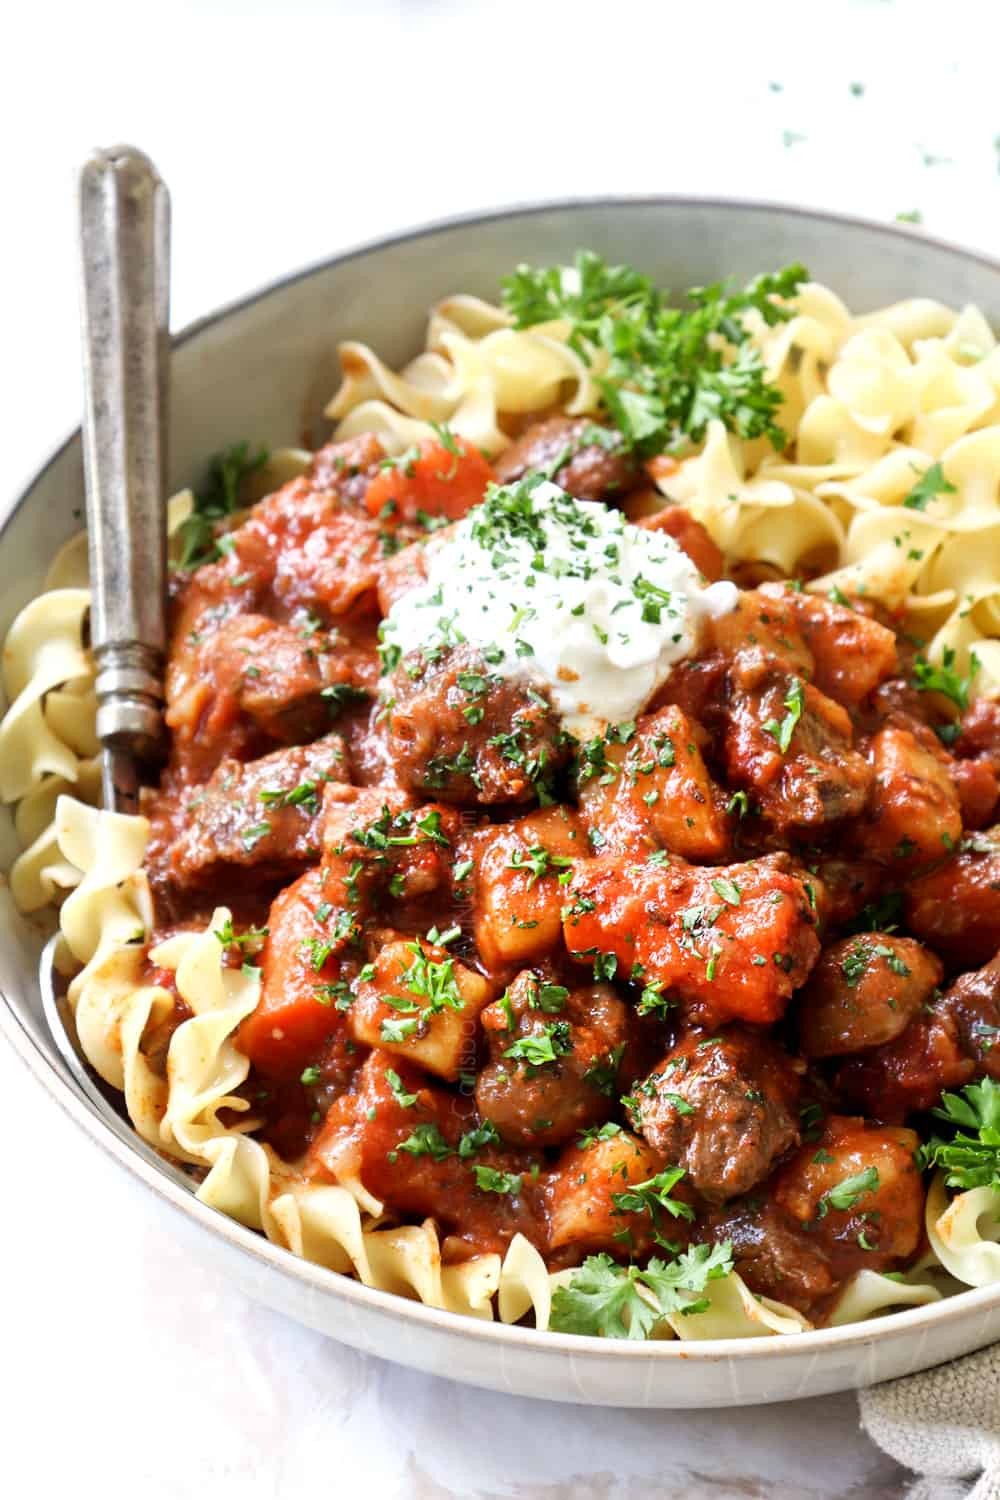 a bowl of Hungarian Goulash recipe with egg noodles